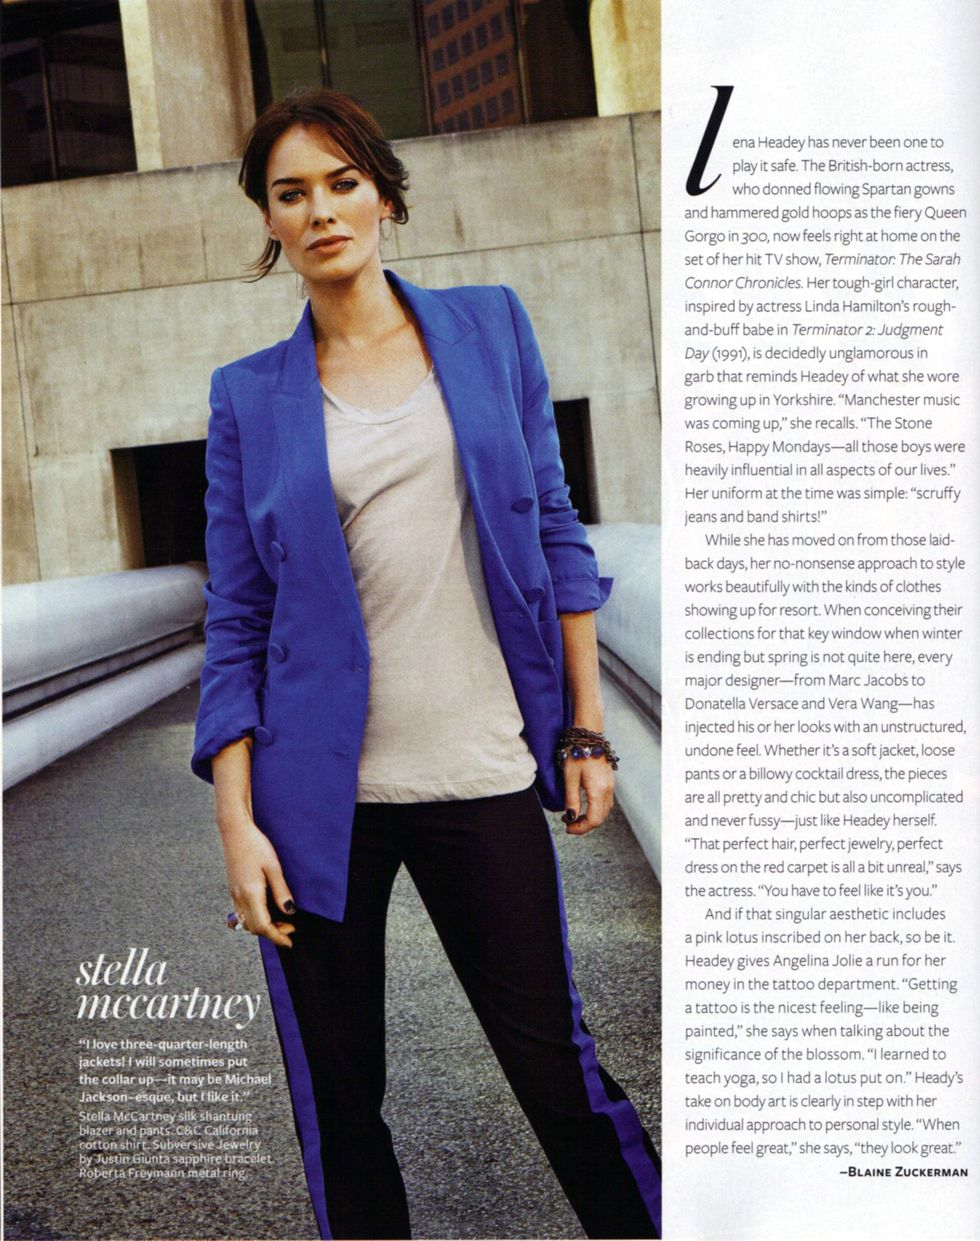 lena-headey-instyle-magazine-november-2008-01